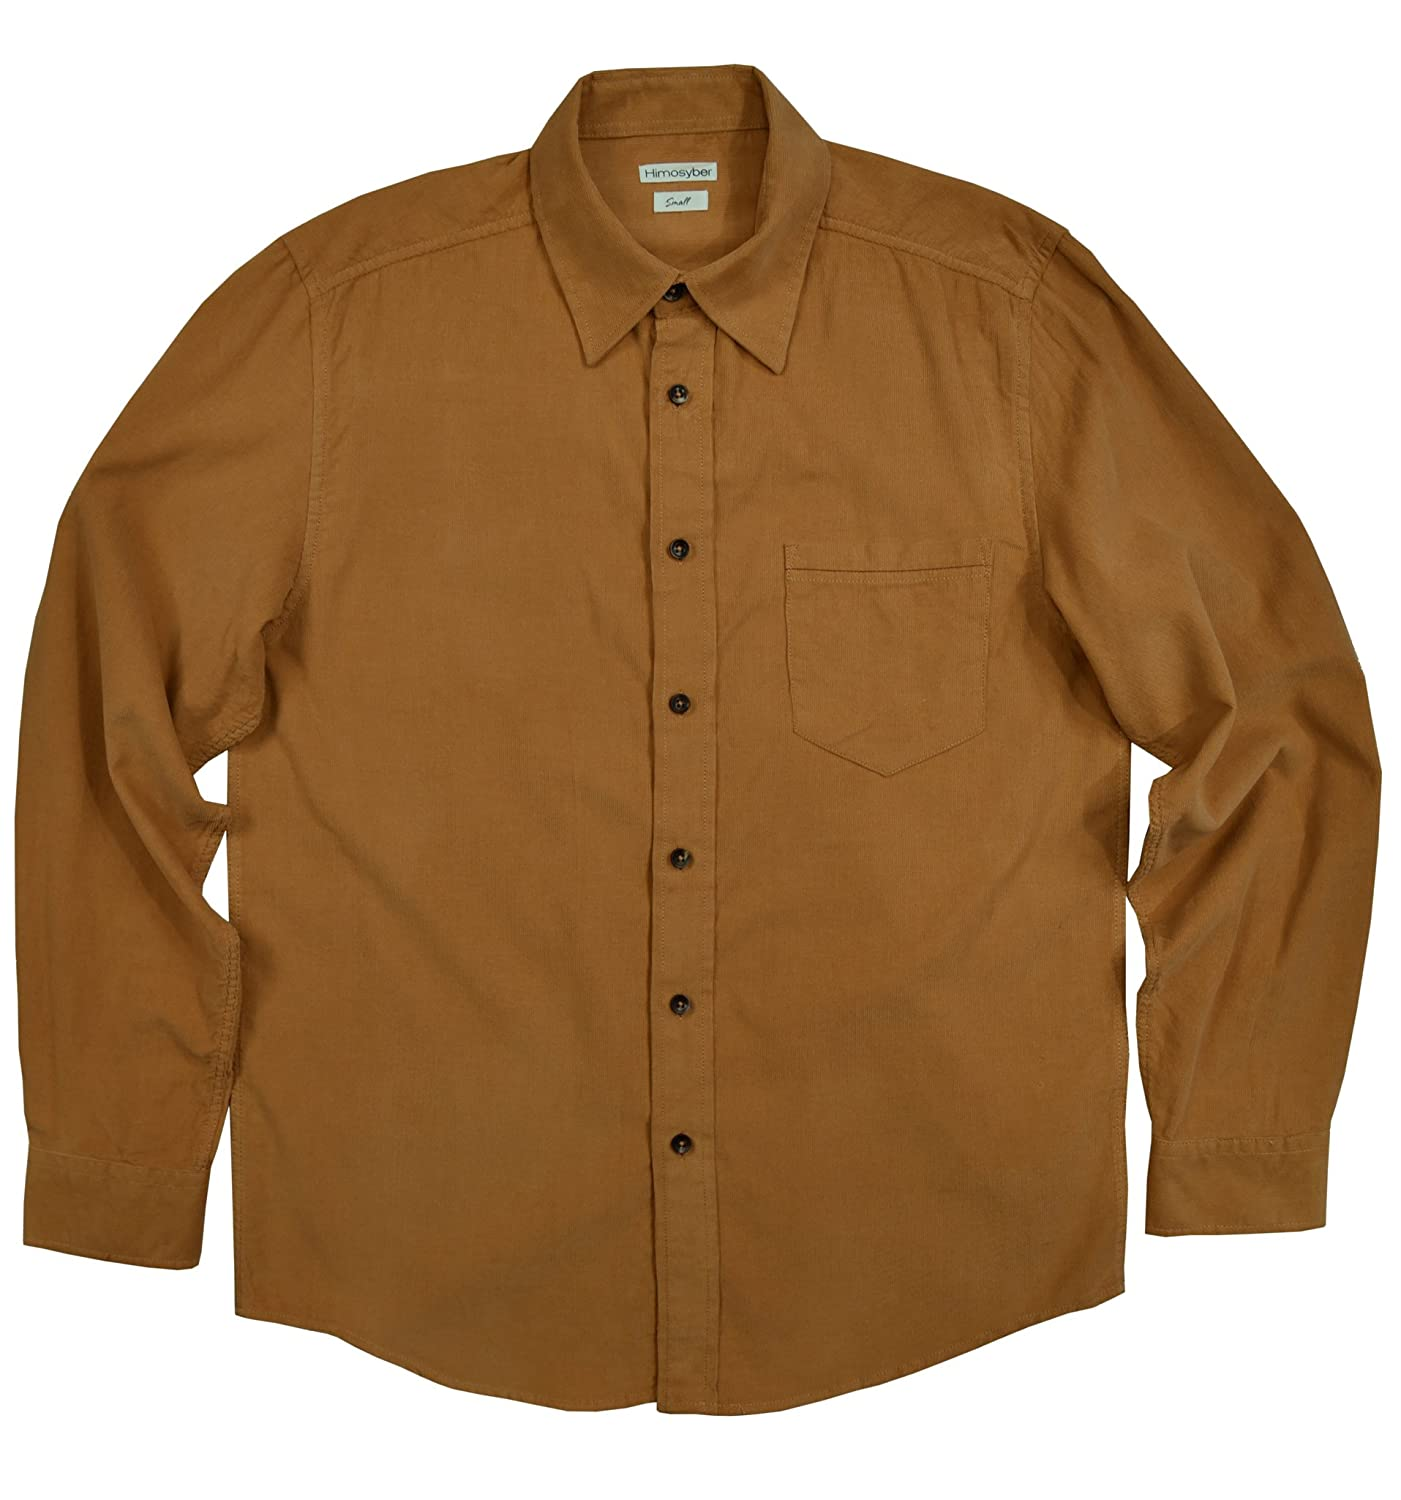 a92648b7 Himosyber Men's Lightweight Corduroy Shirt at Amazon Men's Clothing store: